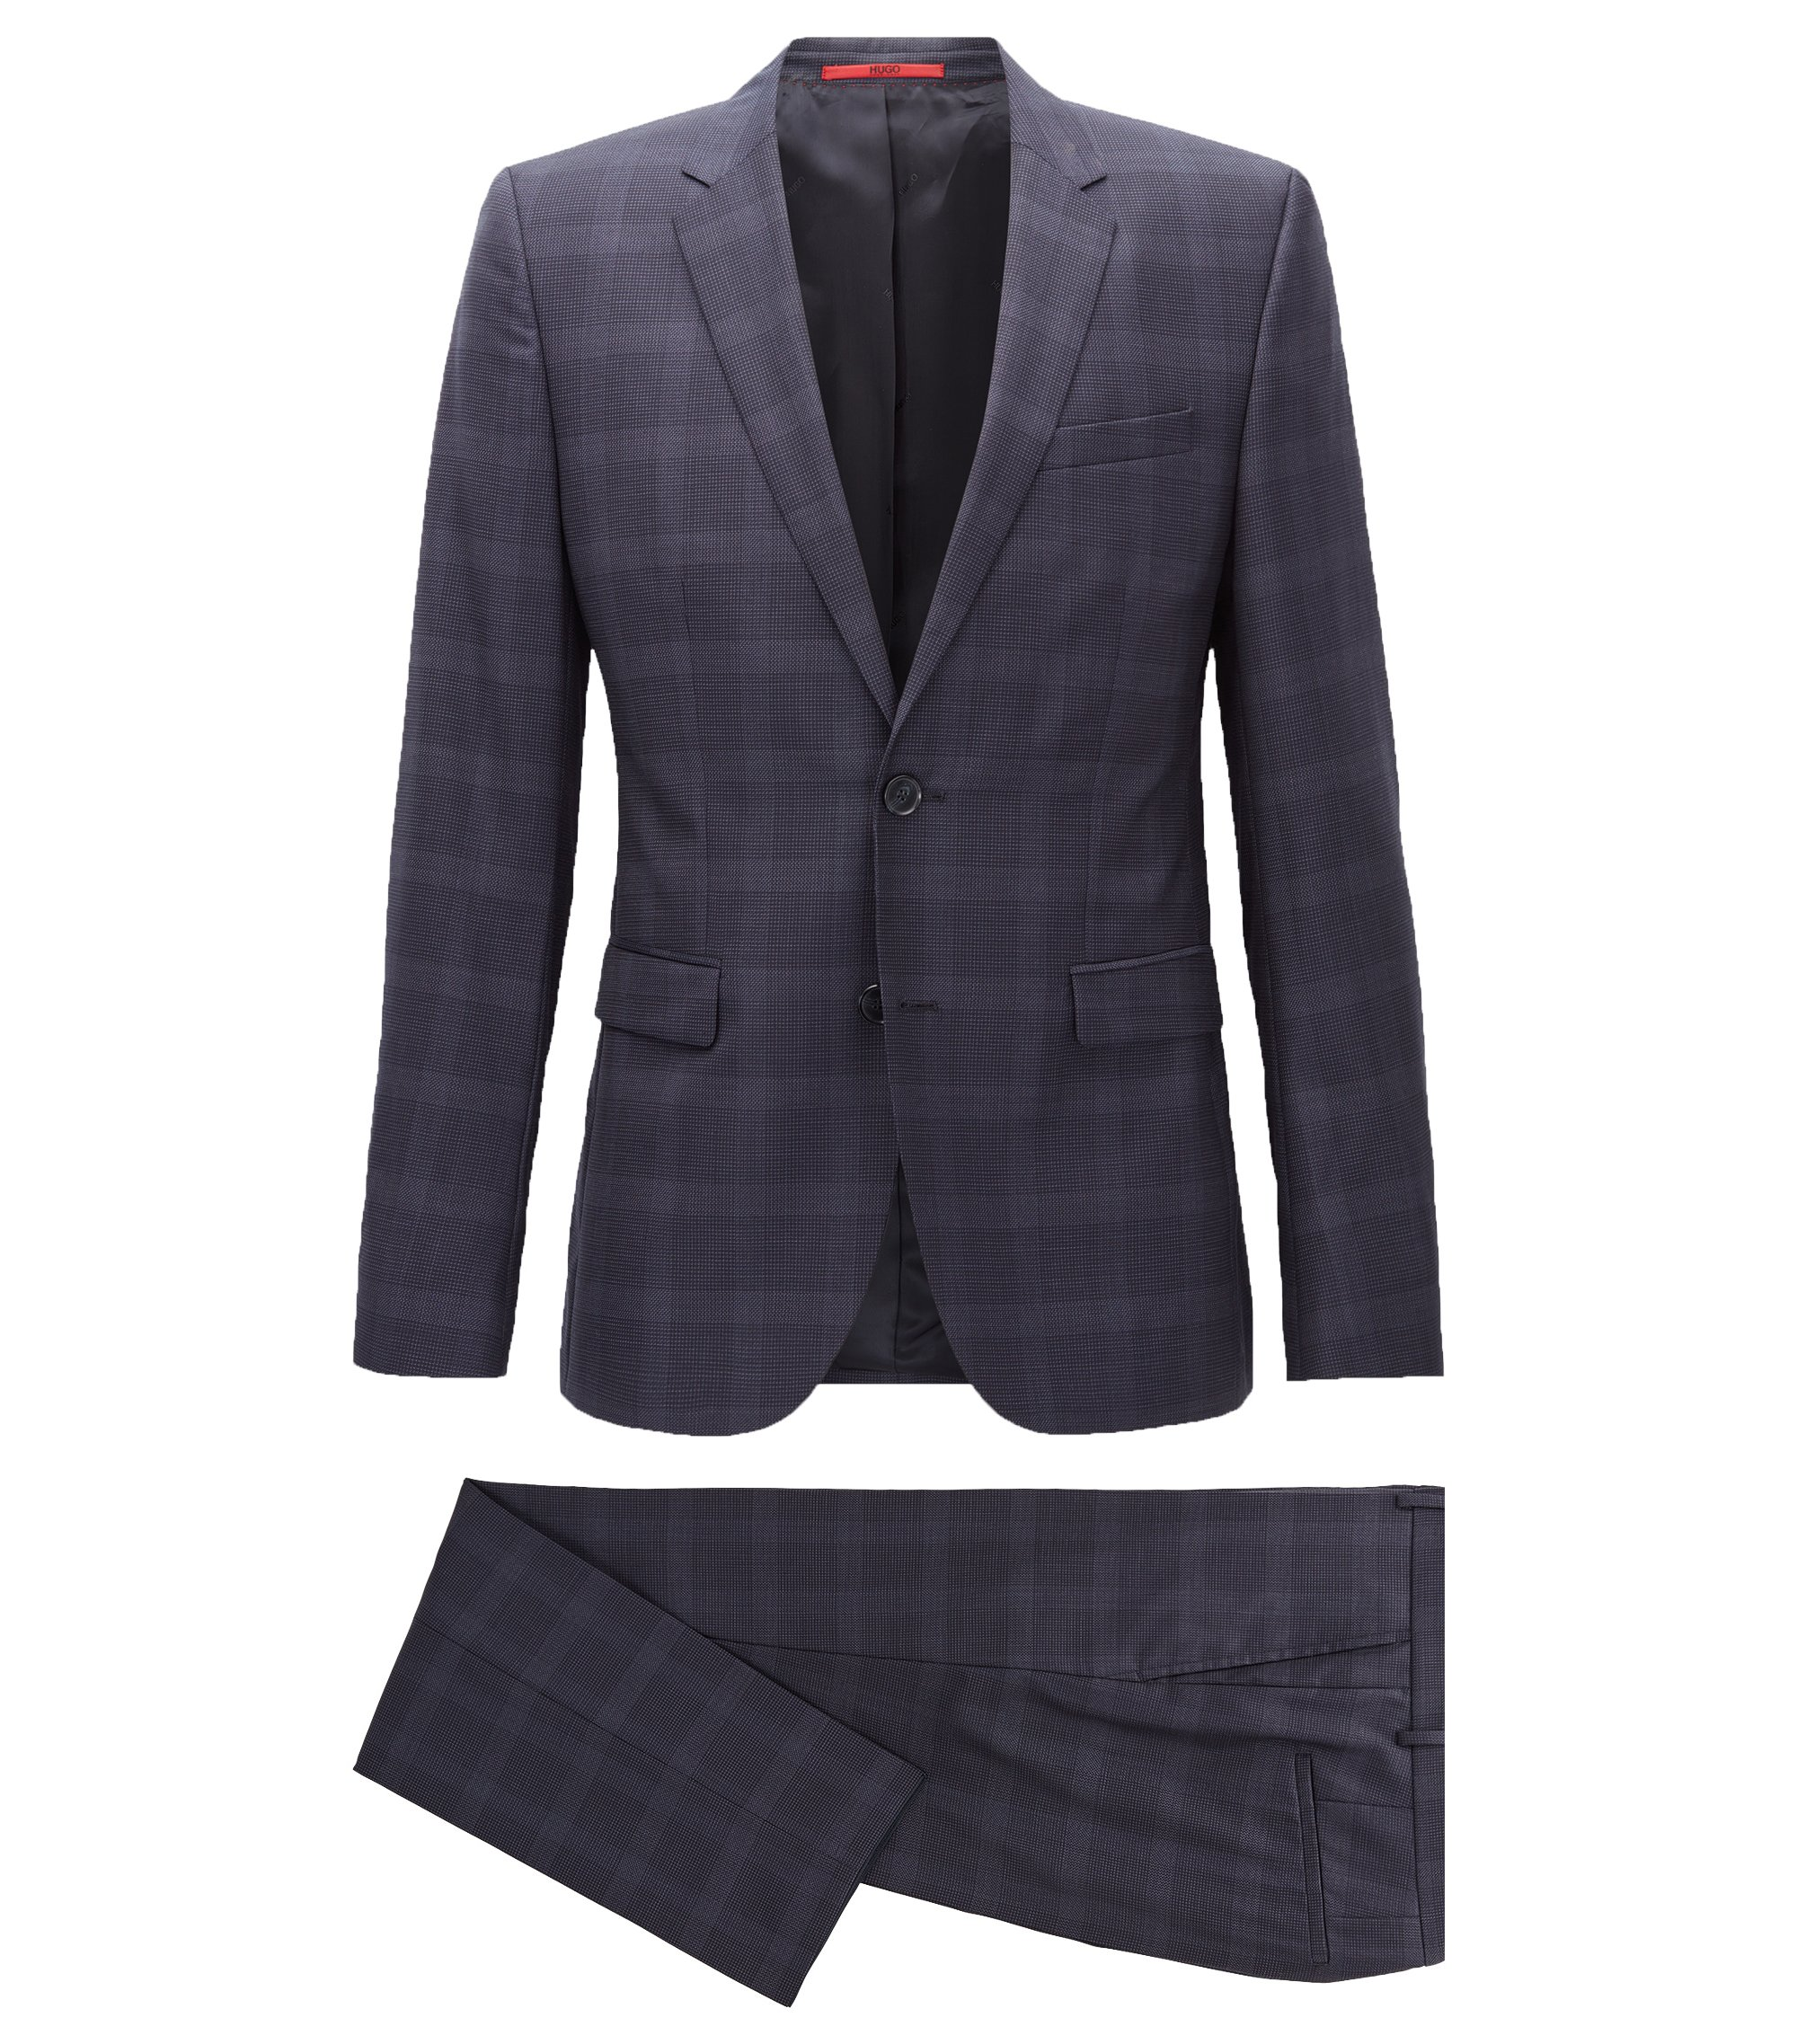 Checked Wool Suit, Extra Slim Fit | Astian/Hets, Dark Blue